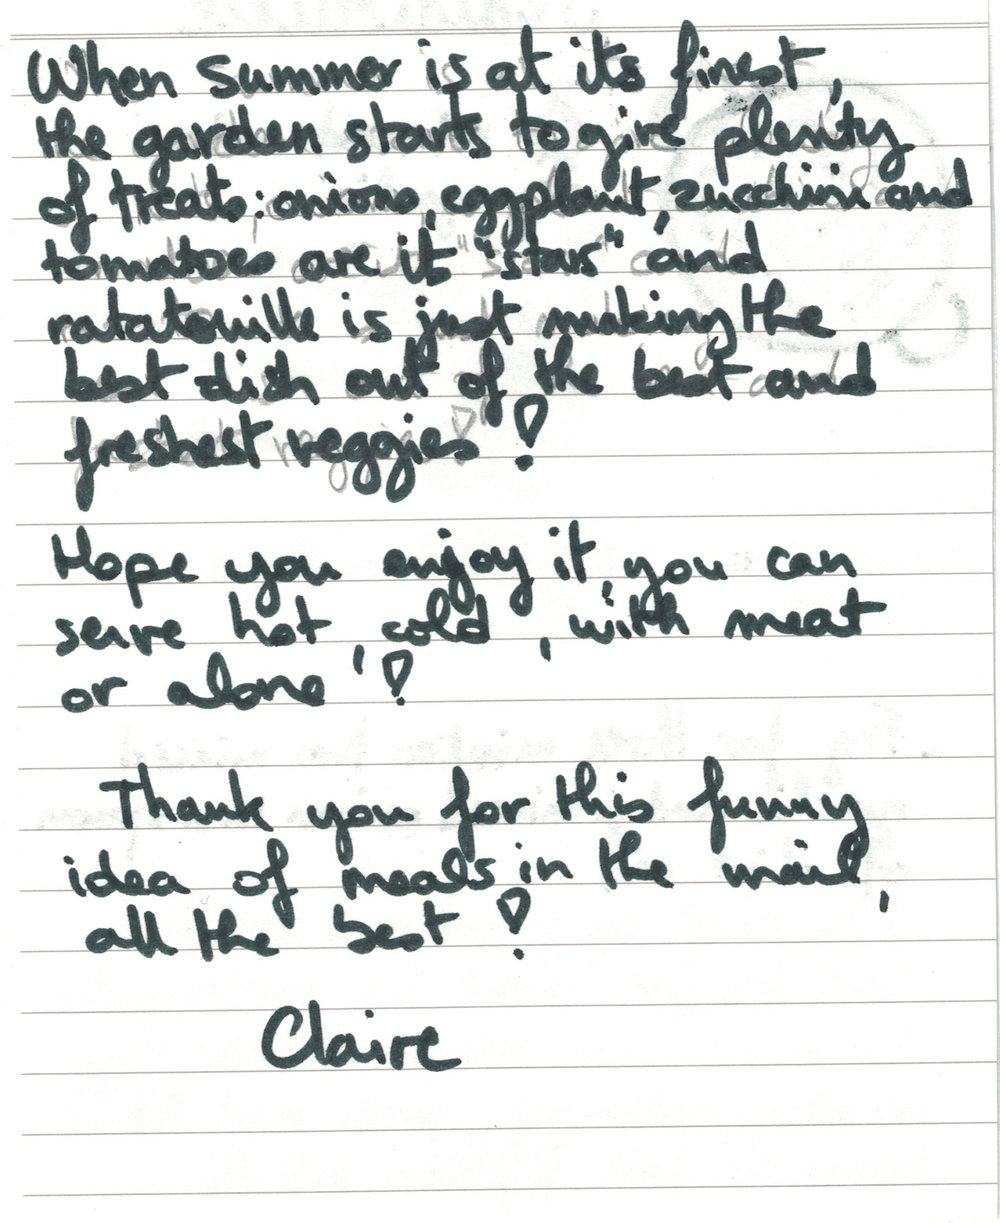 MITM-Claire-letter.jpg